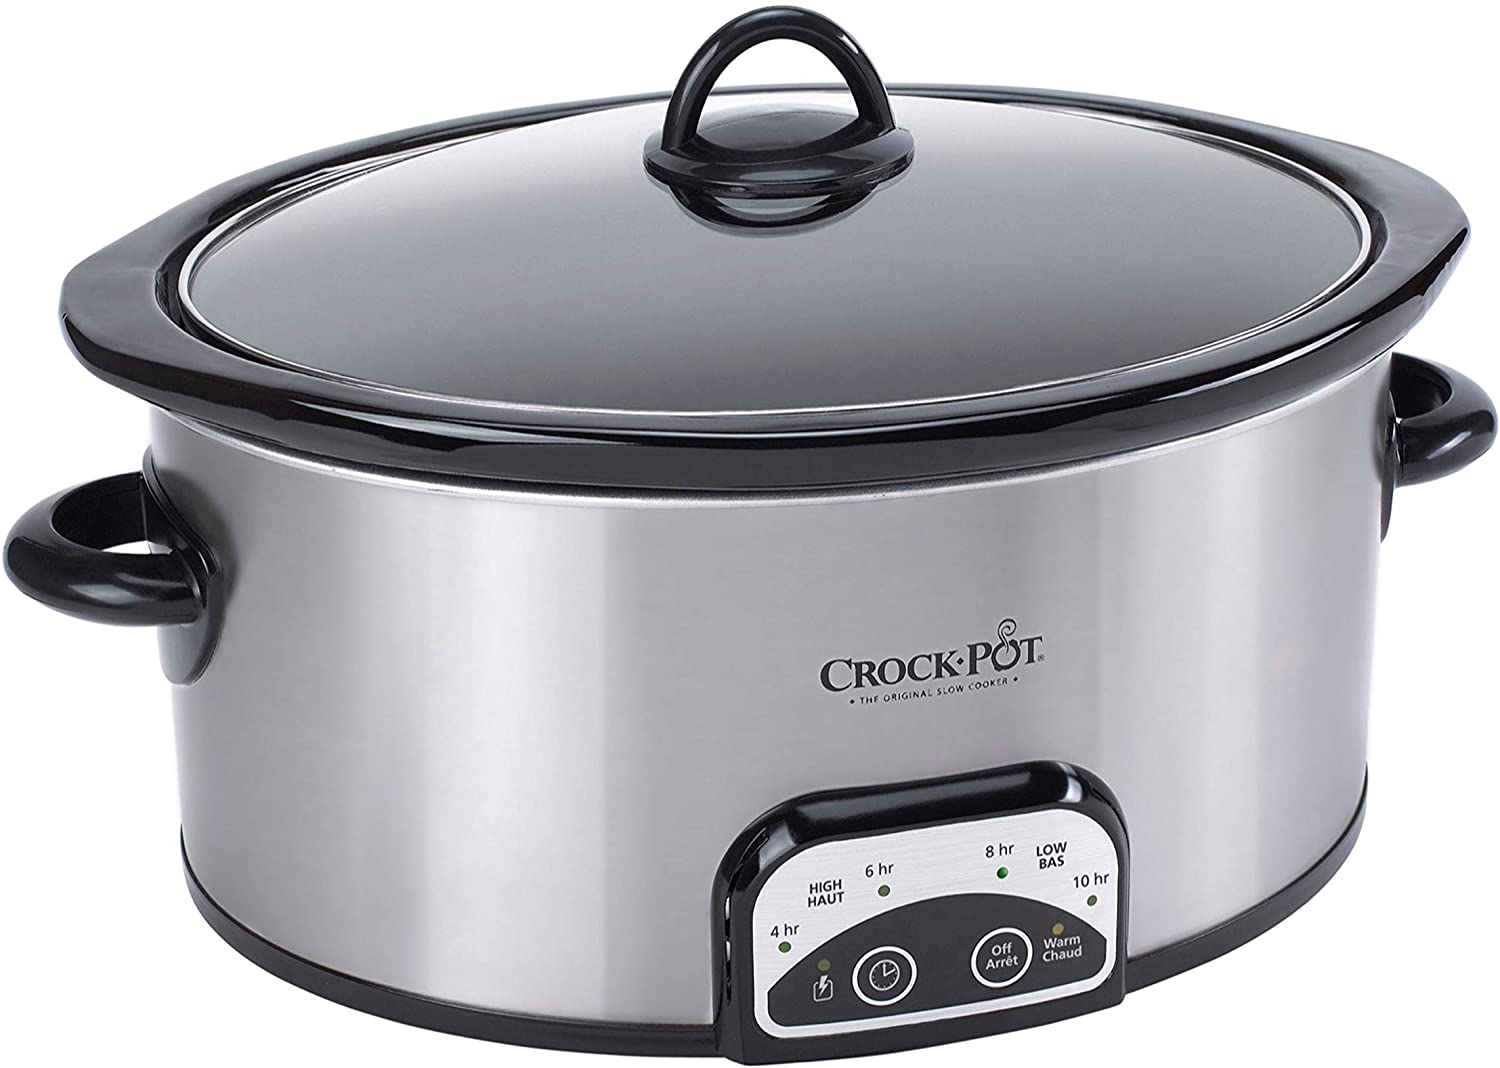 Crock-Pot 4-Quart Smart-Pot Programmable Slow Cooker, Silver